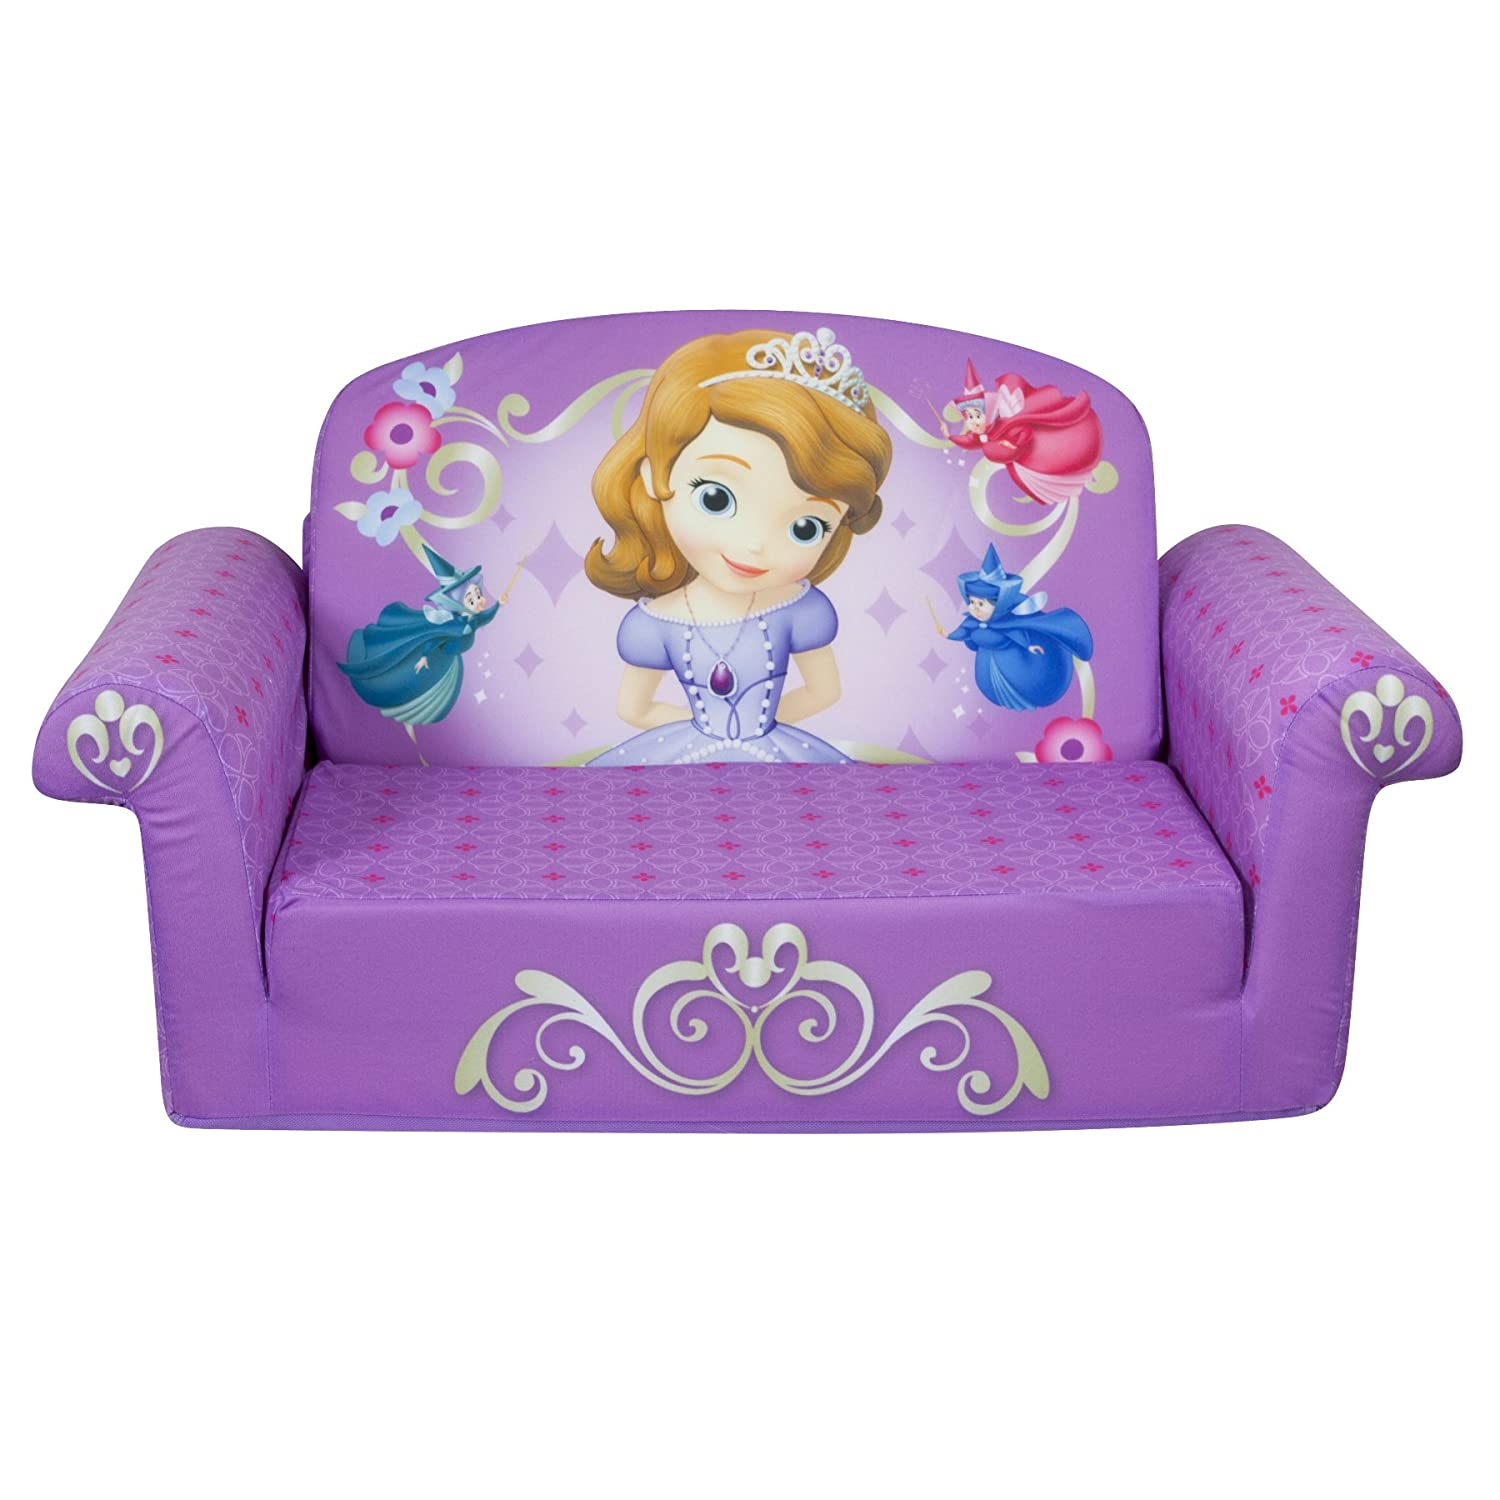 Fine Amazon Com Marshmallow Childrens Furniture 2 In 1 Flip Onthecornerstone Fun Painted Chair Ideas Images Onthecornerstoneorg